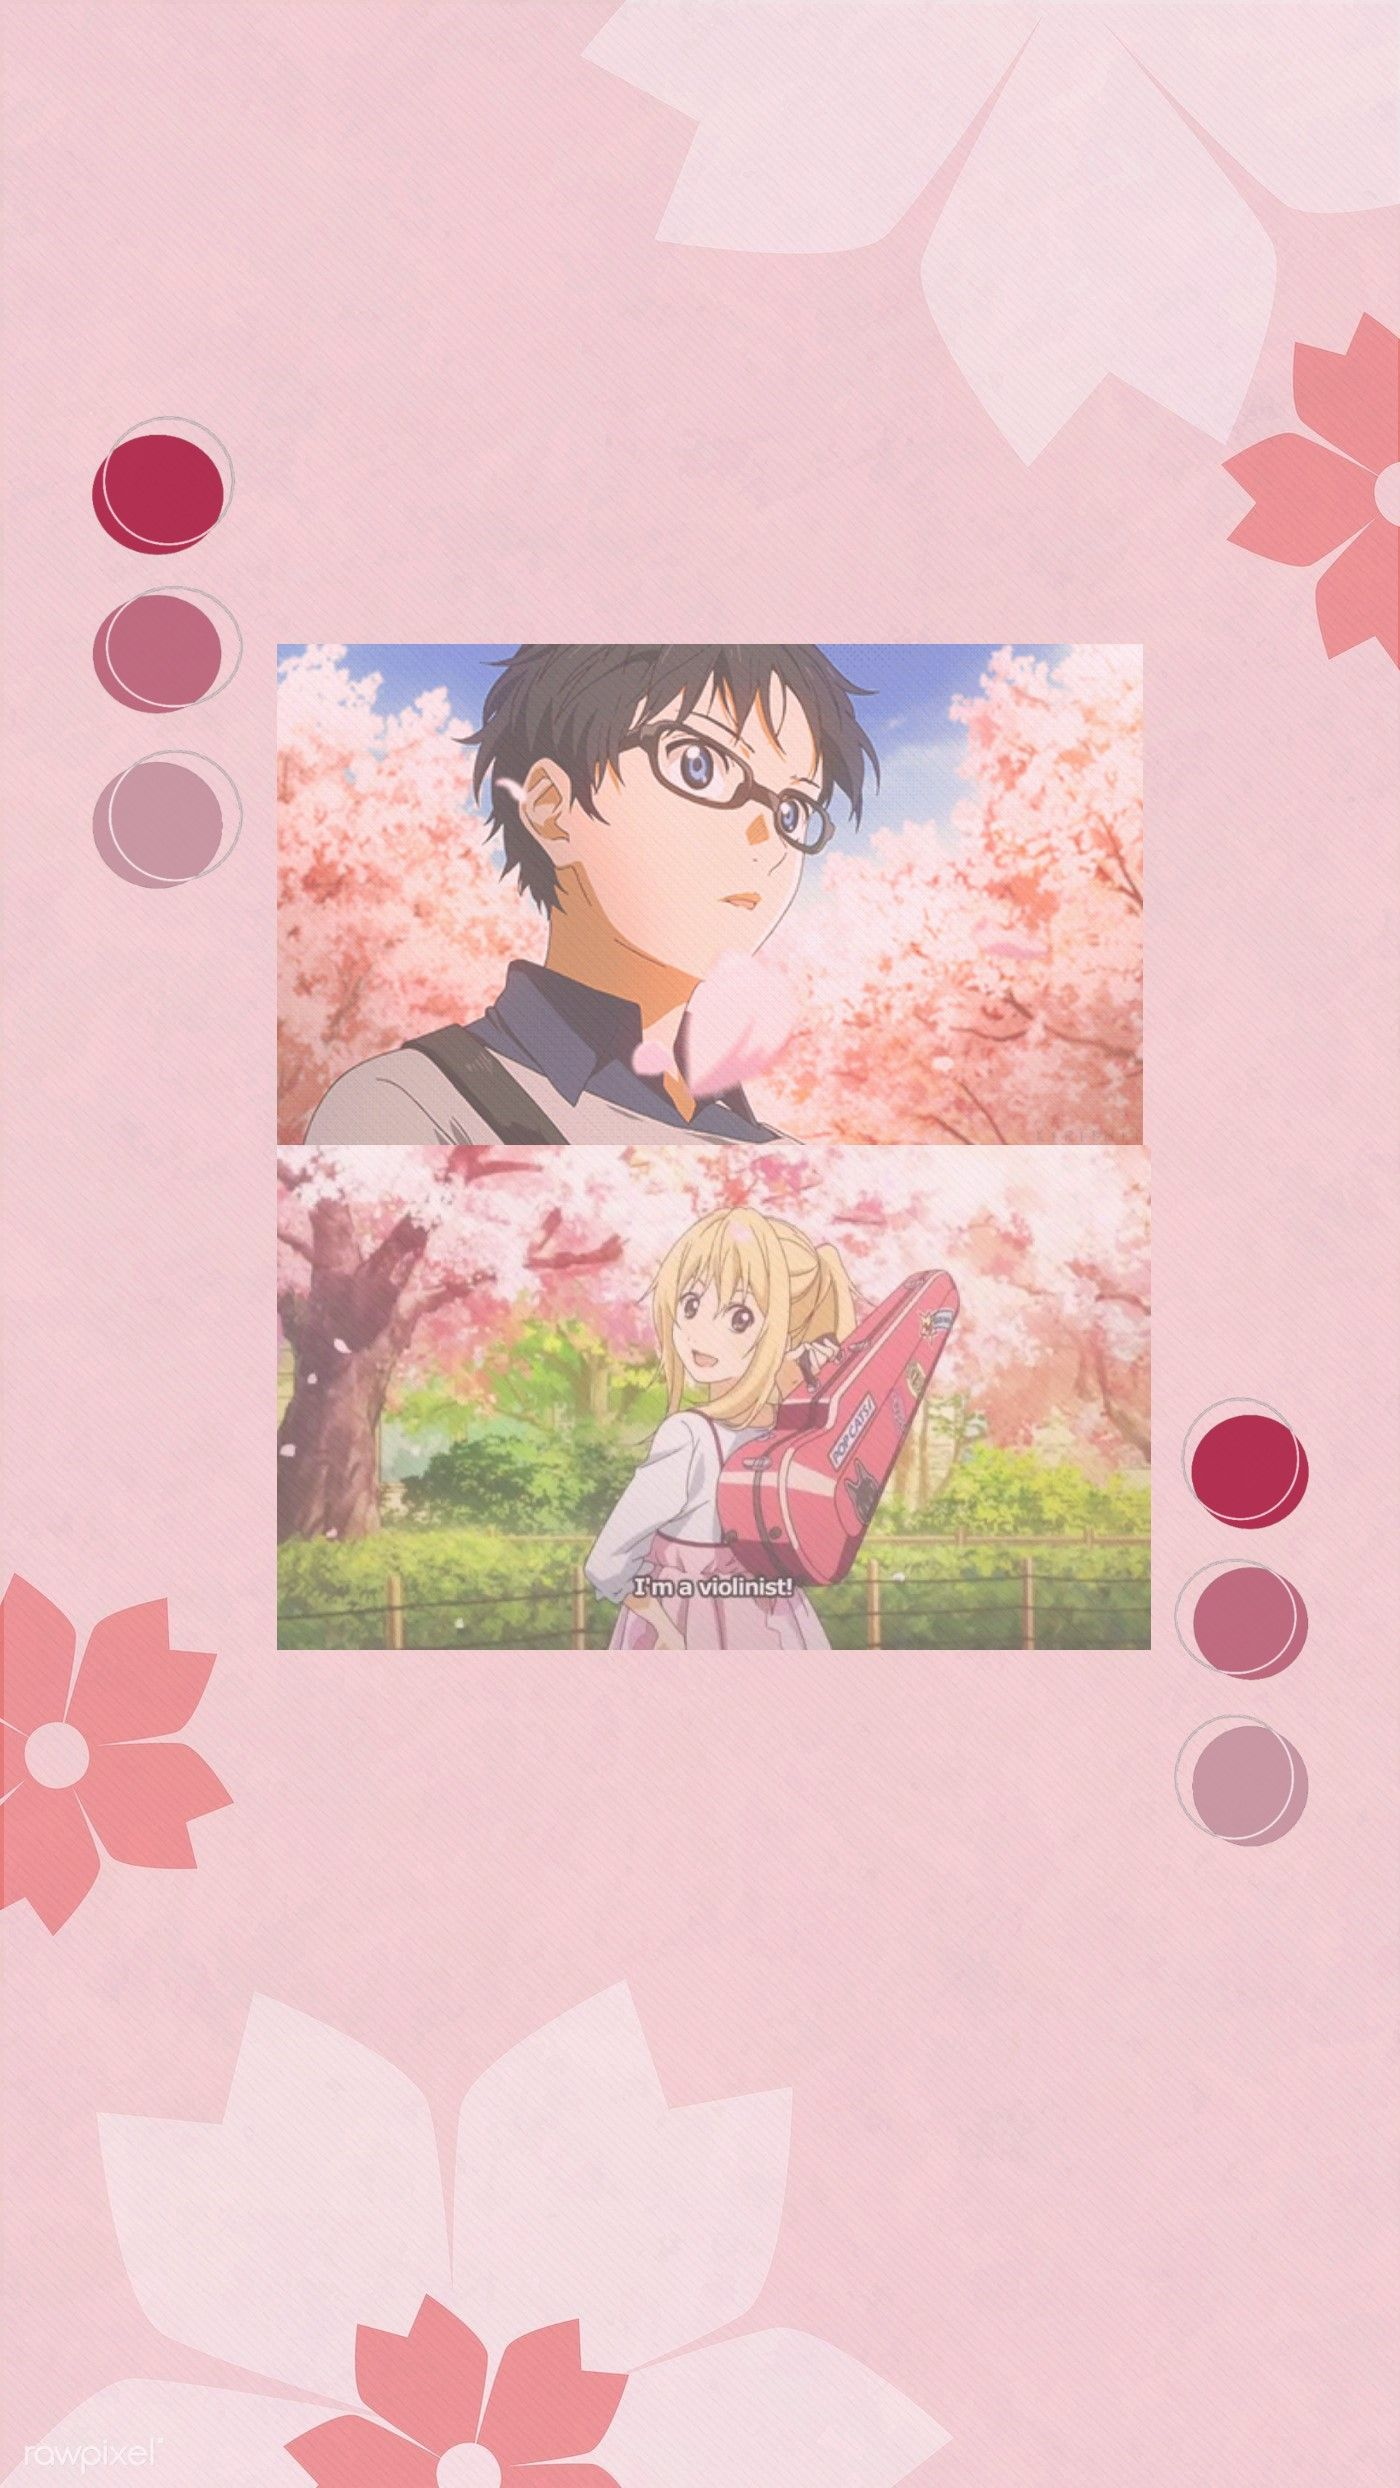 Your Lie In April Wallpaper Anime Backgrounds Wallpapers Anime Wallpaper Anime Wallpaper Phone Aesthetic anime wallpaper your lie in